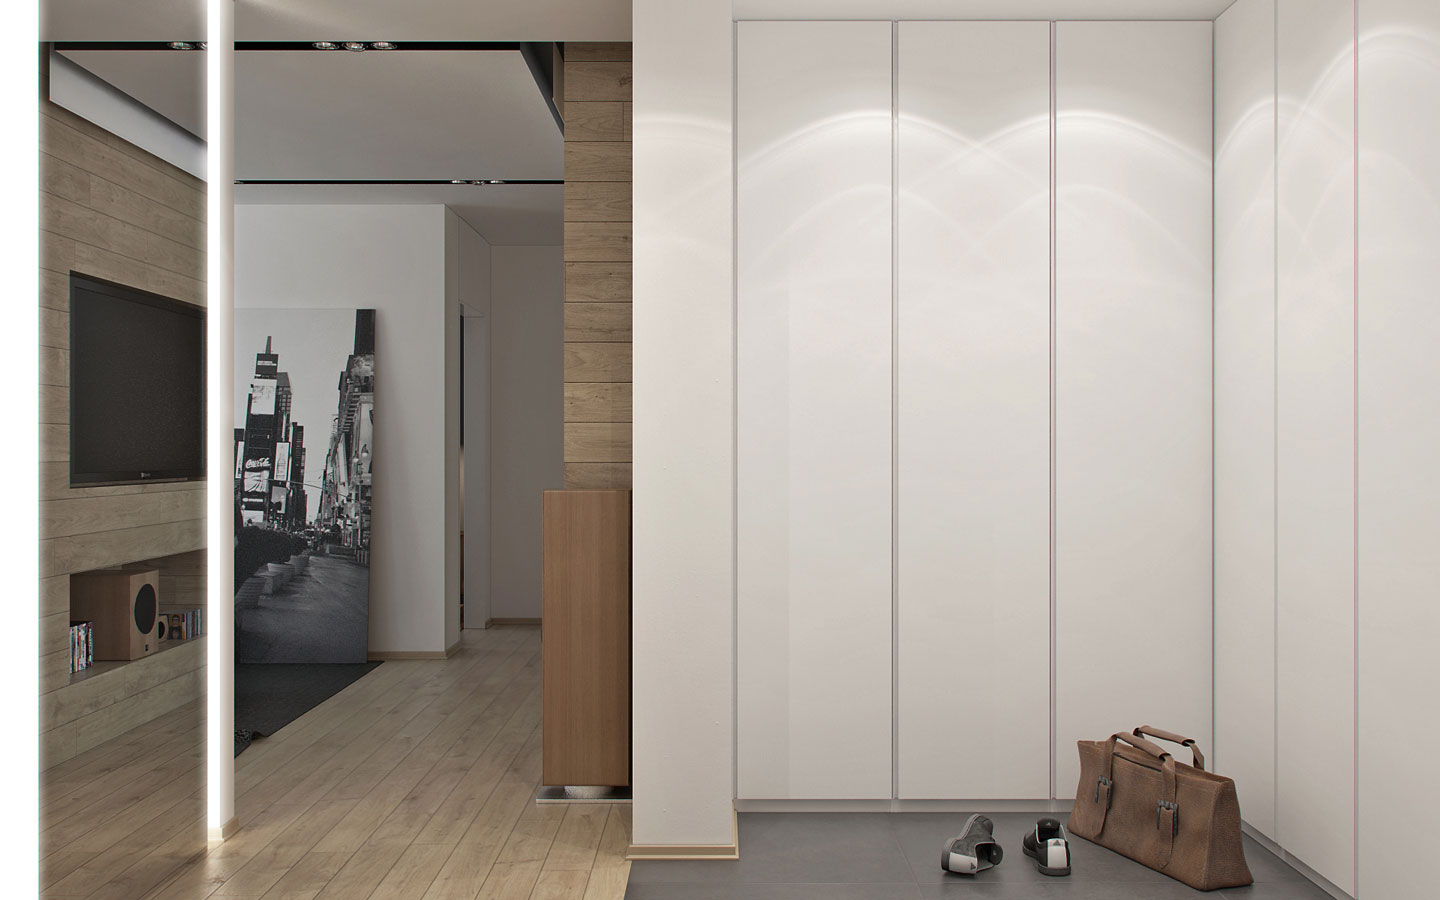 Mirrored Entryway Design - 5 ideas for a one bedroom apartment with study includes floor plans